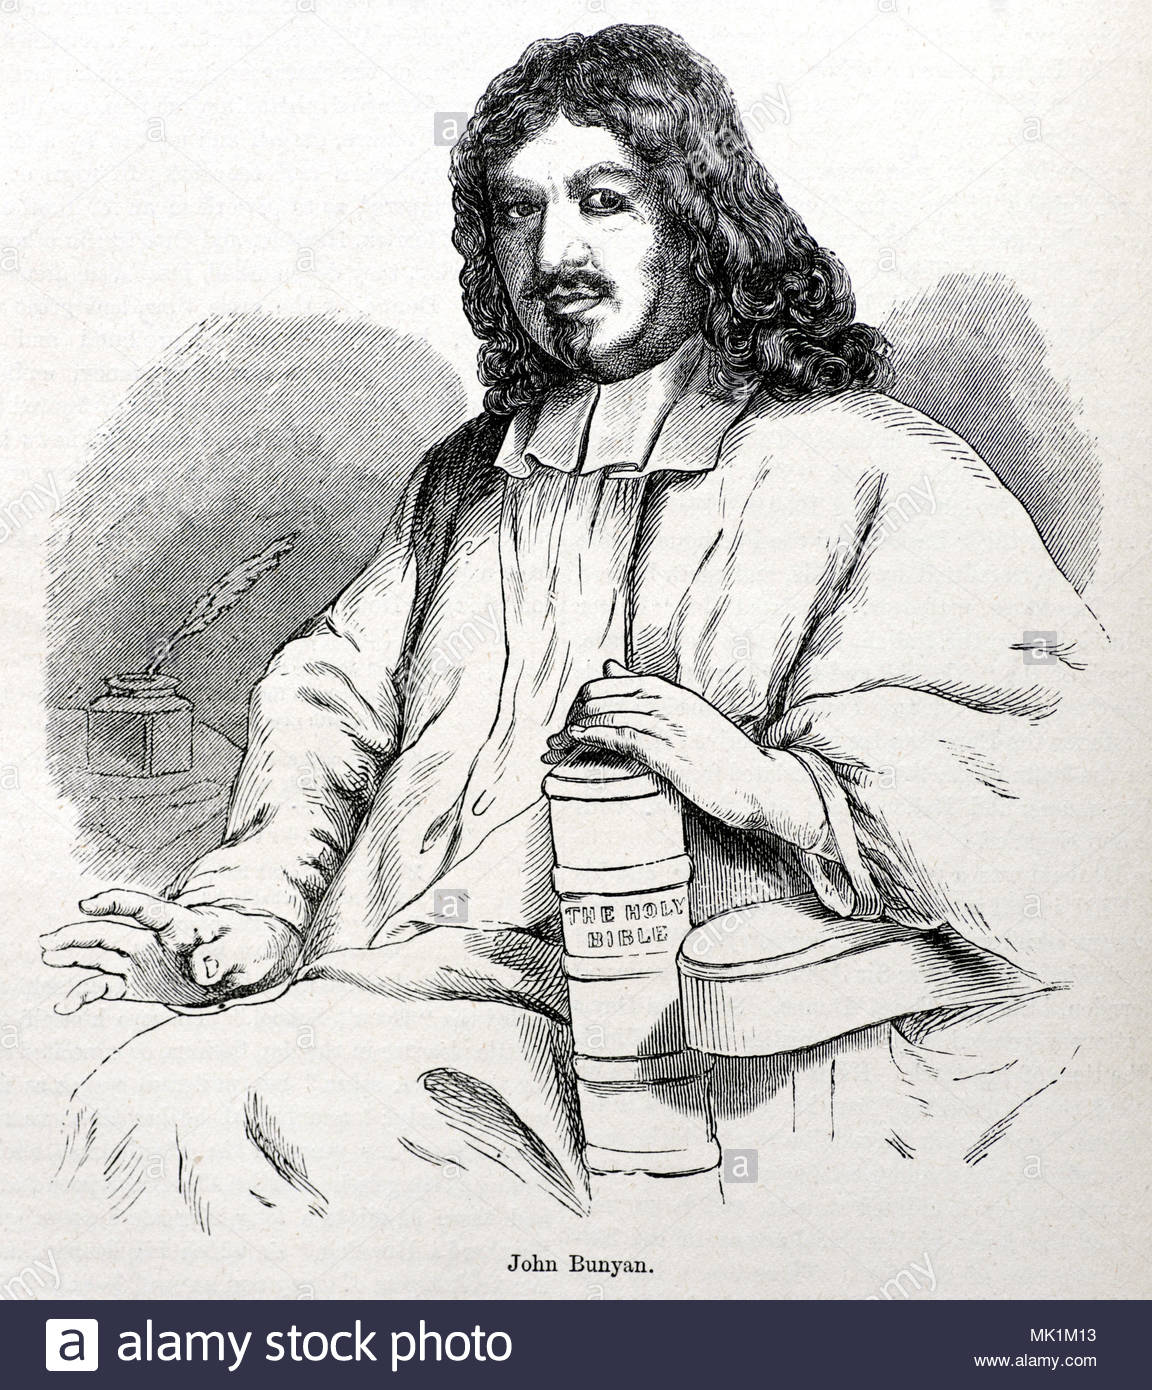 John Bunyan portrait 1628 – 1688 was an English writer and Puritan preacher best remembered as the author of the Christian allegory The Pilgrim's Progress, antique illustration from circa 1880 - Stock Image